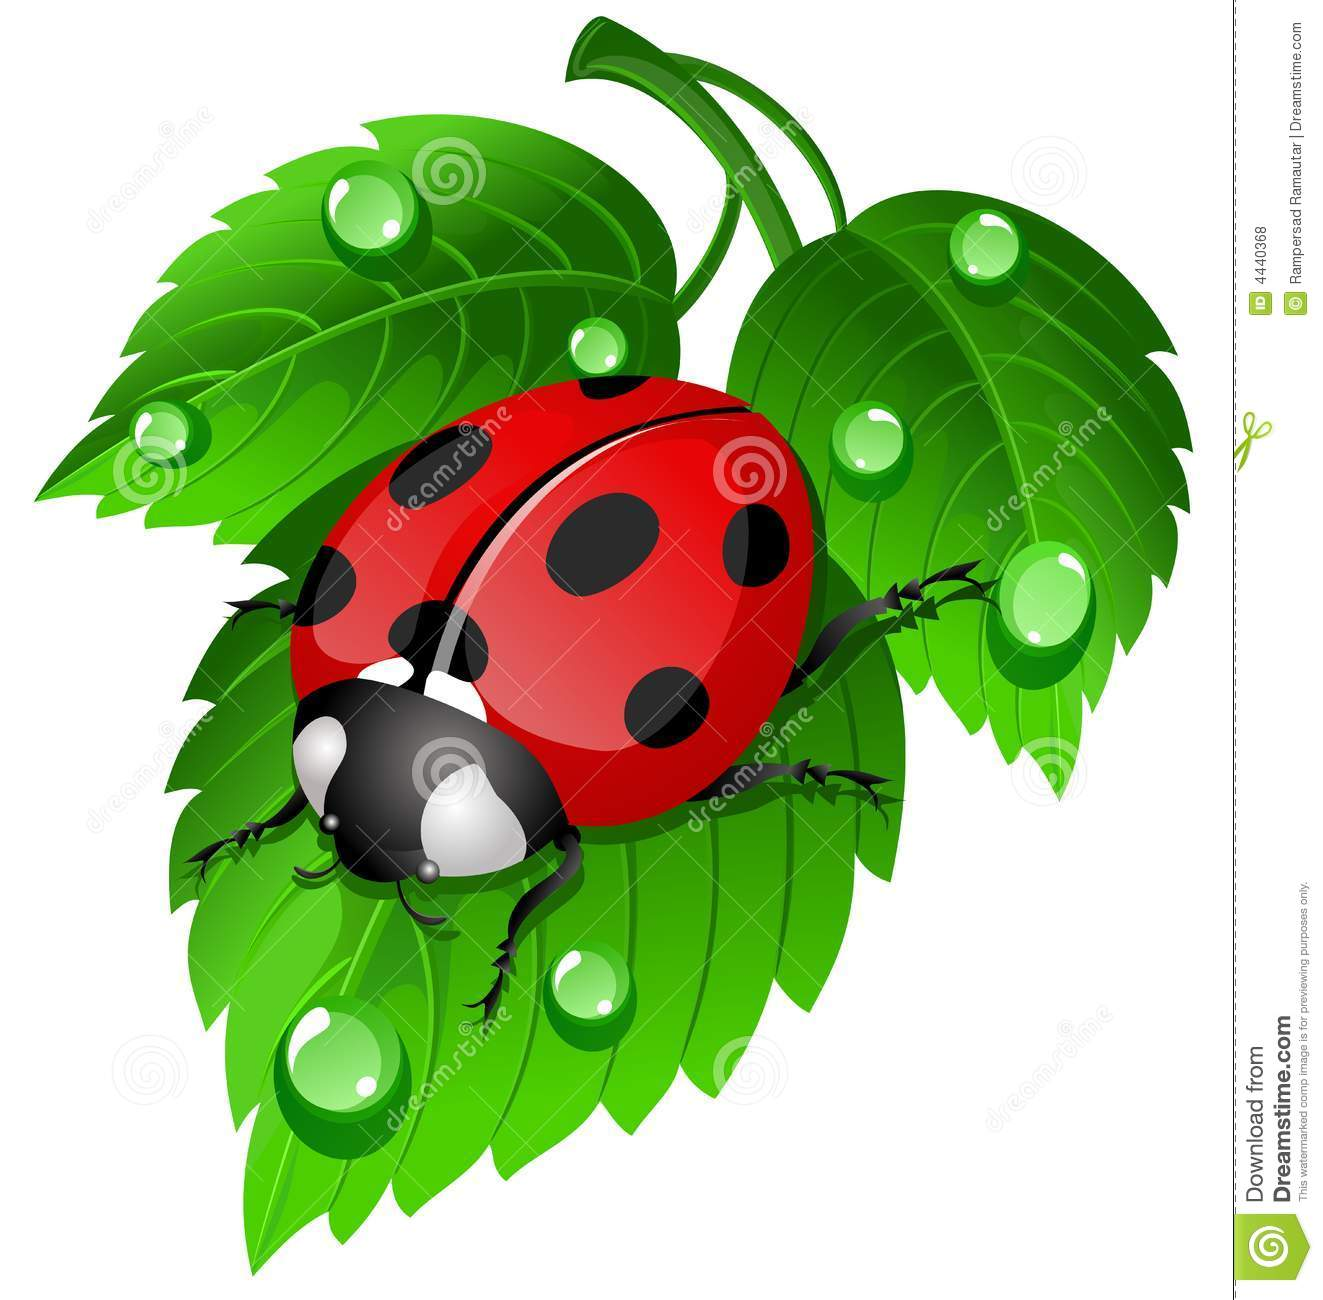 Ladybug On Leaf Royalty Free Stock Photos - Image: 4440368